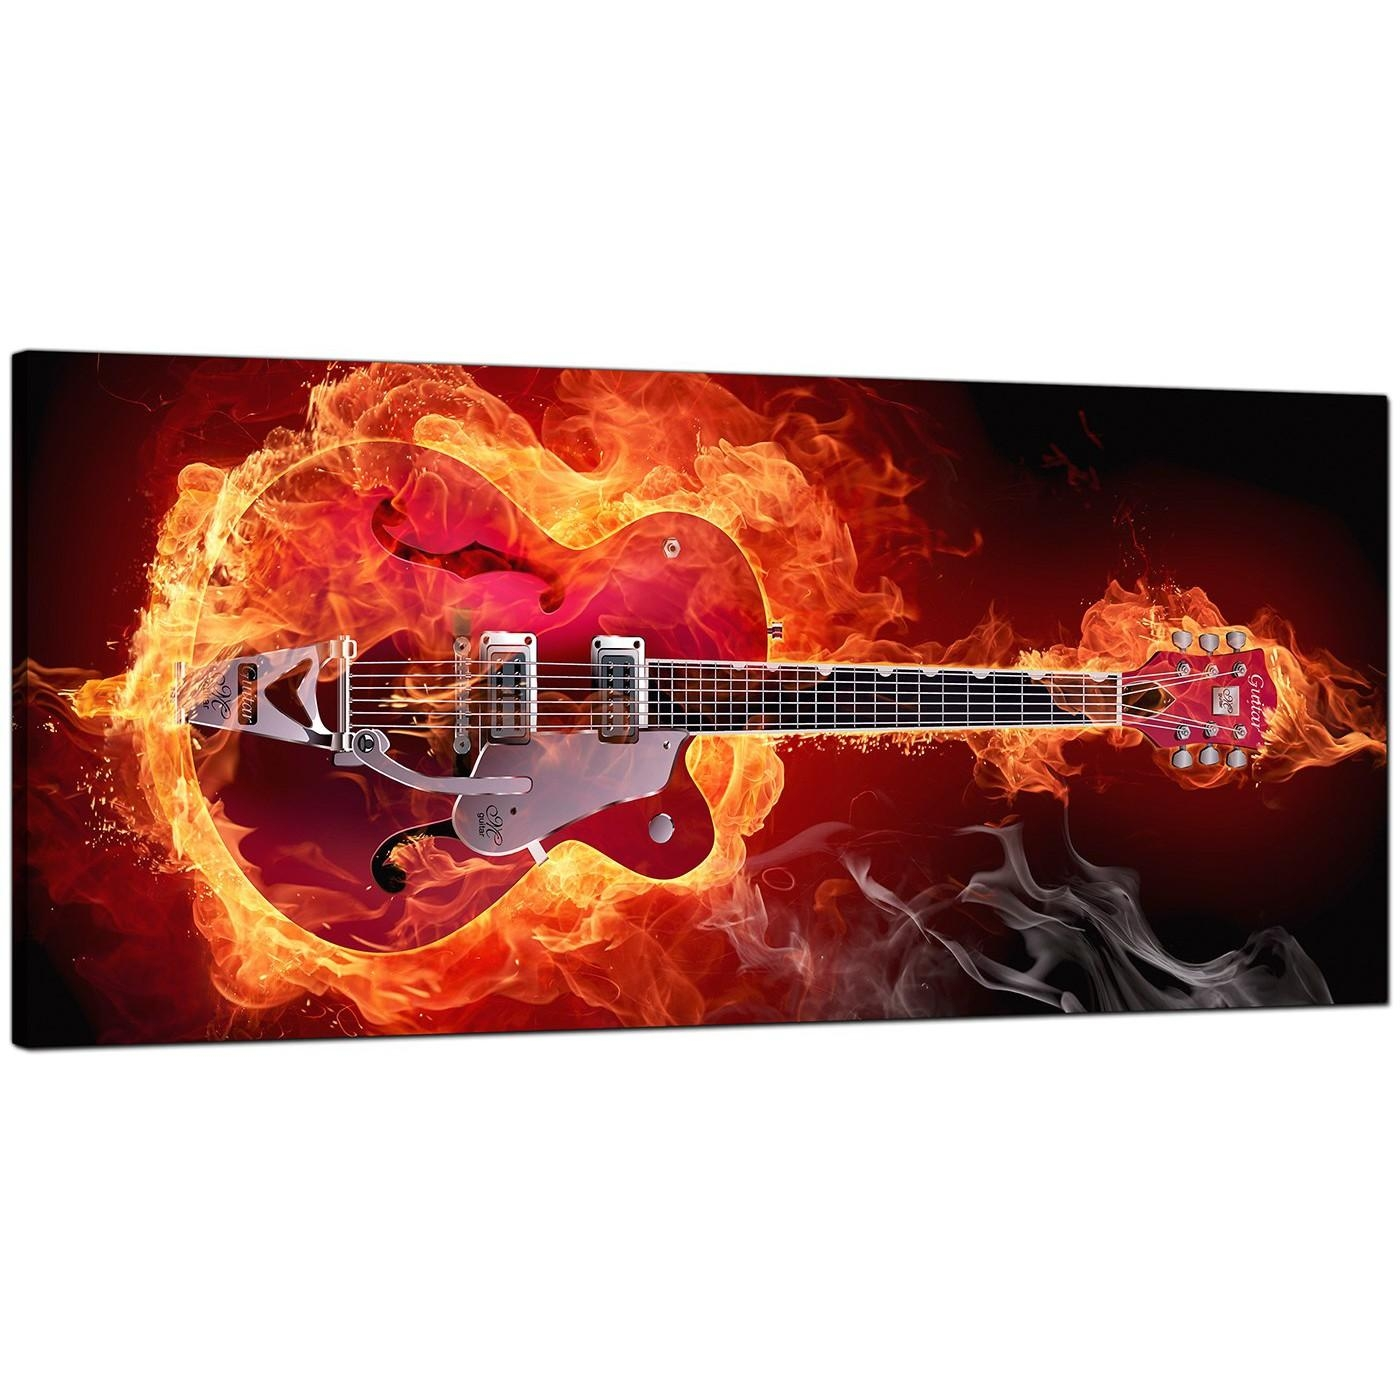 Large Orange Canvas Pictures Of An Electric Guitar On Fire Pertaining To Guitar Canvas Wall Art (Image 12 of 20)